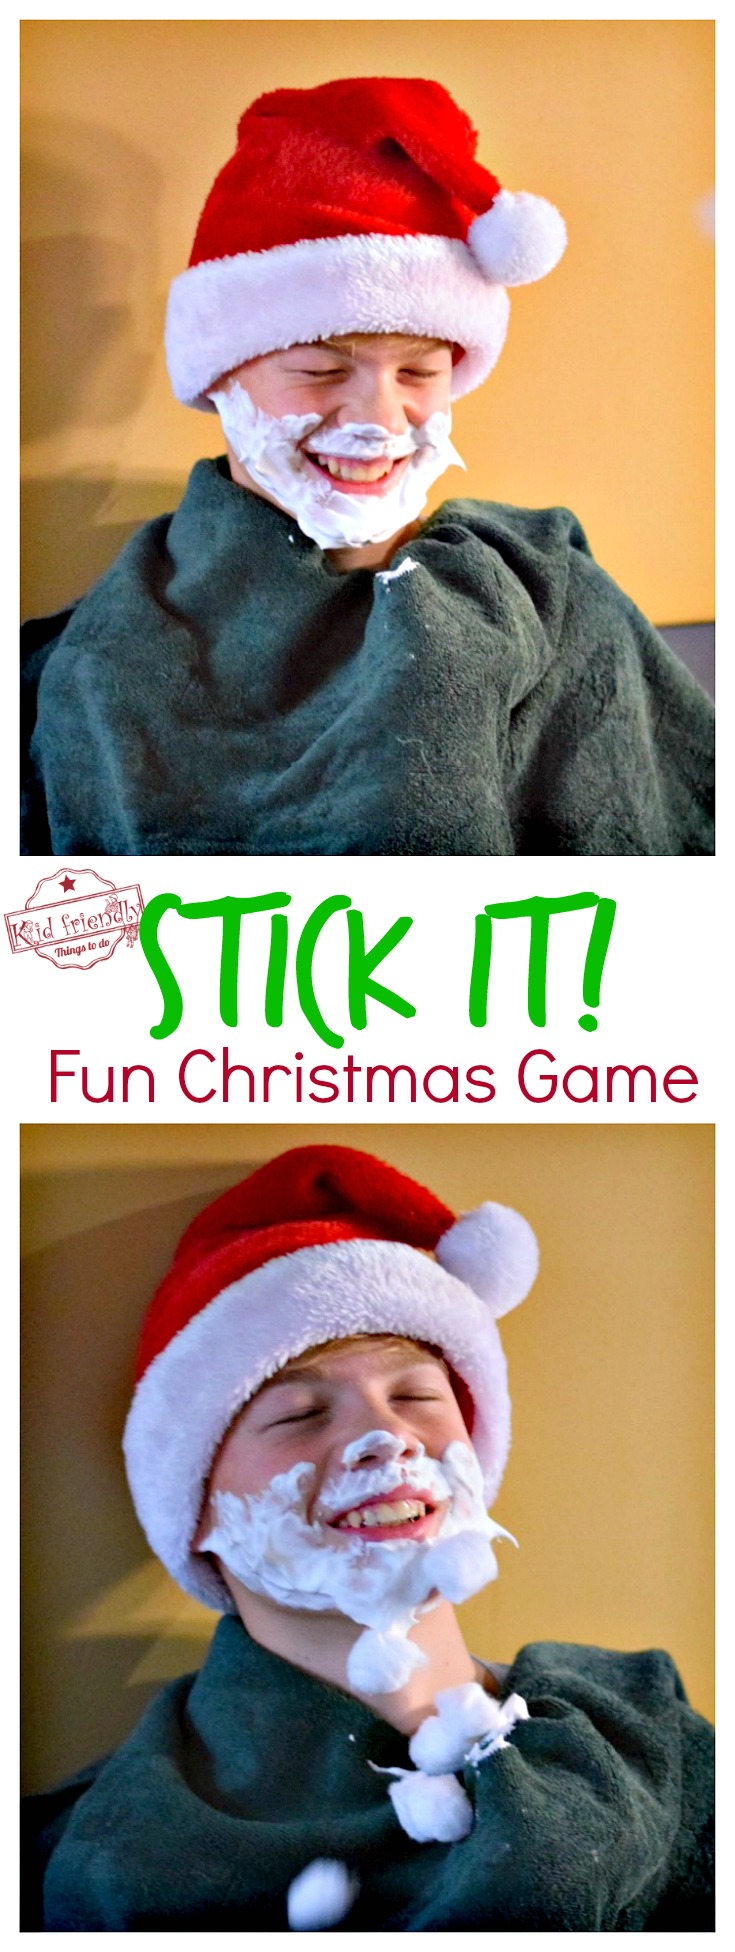 Stick It! A Fun, Cheap and Easy Christmas Game to Play with family, kids, teens and adults - Who can stick the most cotton balls or marshmallows to Santa's beard? Great Minute To Win It game for the whole group! www.kidfriendlythingstodo.com